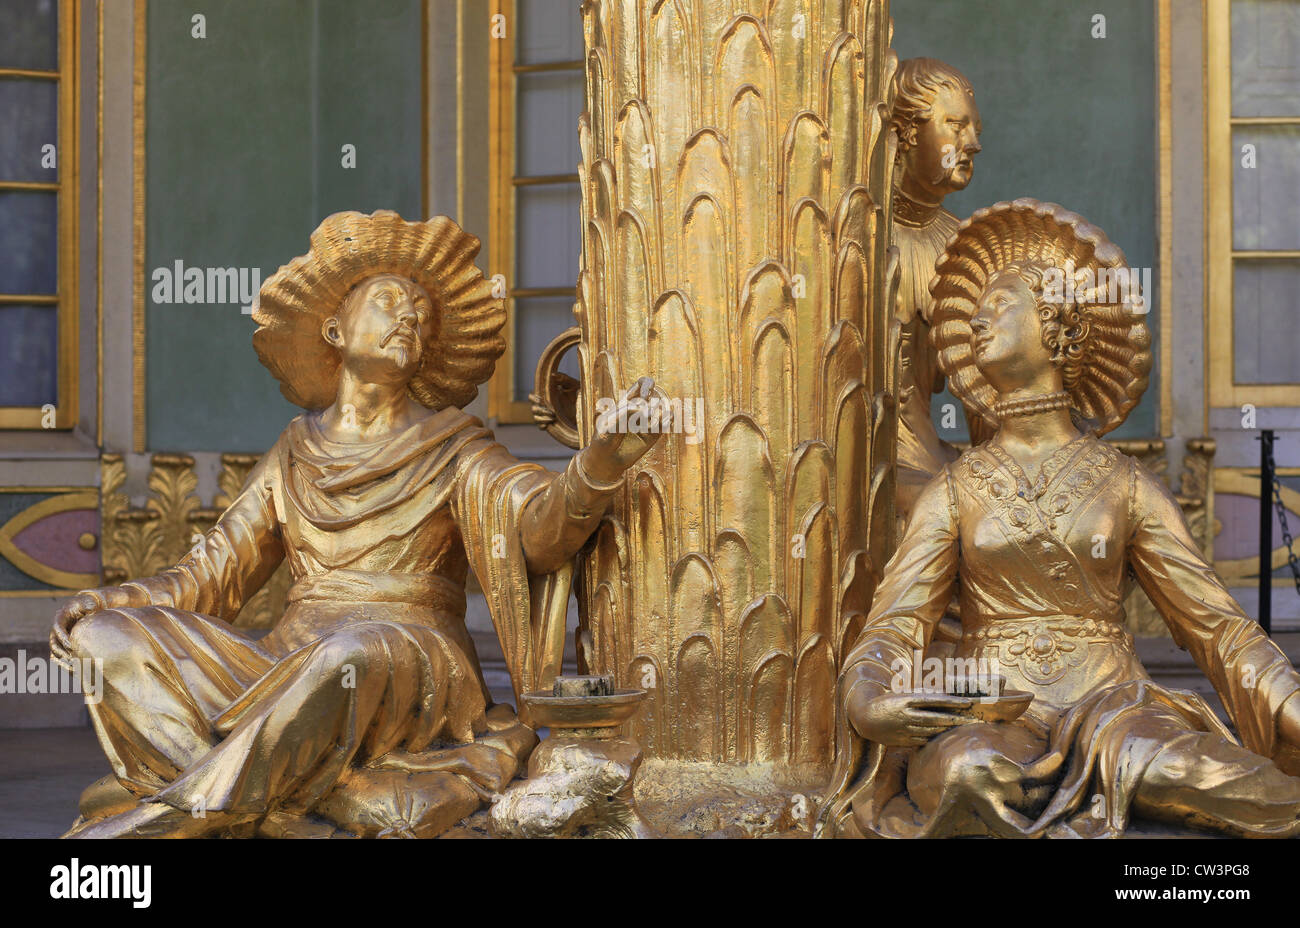 Ensemble of gilded sandstone sculptures of the Chinese House, a garden pavilion in the Sanssouci Park in Potsdam, - Stock Image